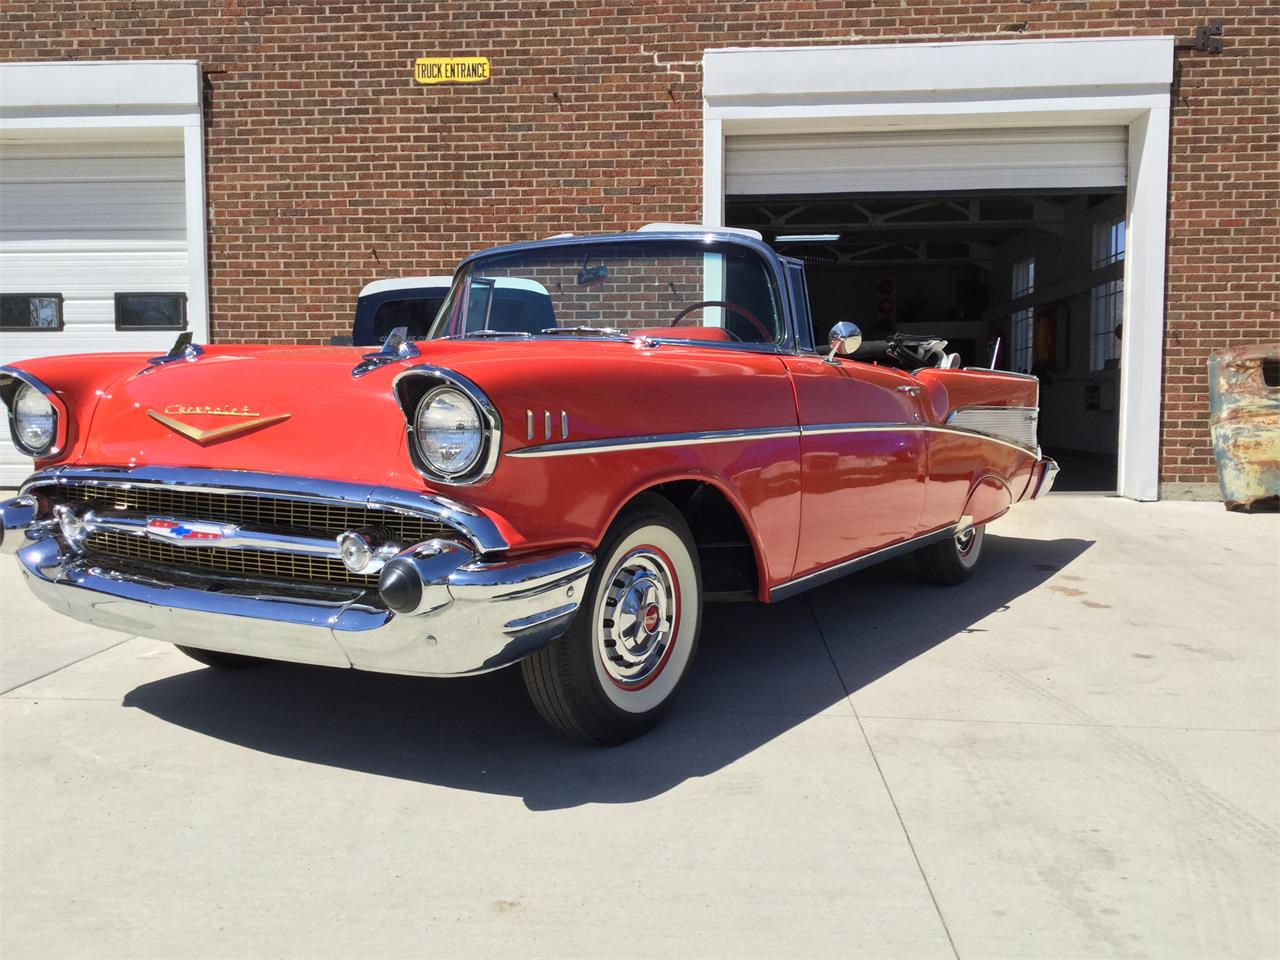 Large Picture of '57 Bel Air located in Clarklake Michigan - $49,000.00 - ND2A